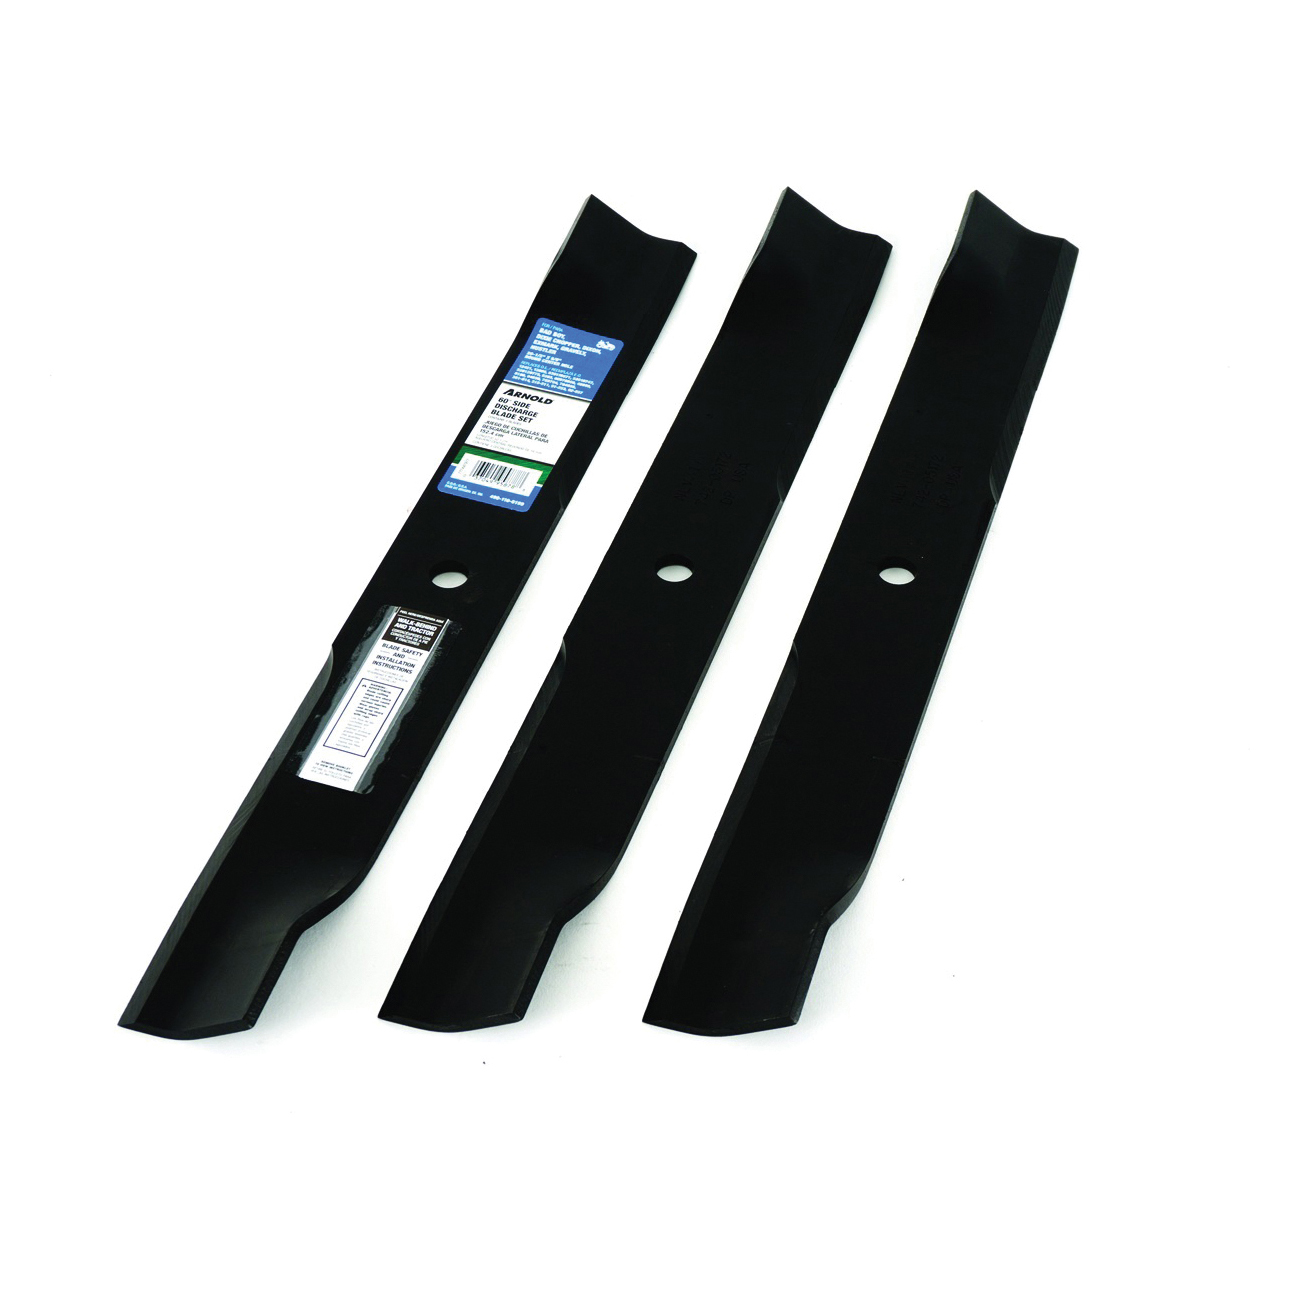 Picture of ARNOLD 490-110-0159 Blade Set, 60 in L, For: Bad Boy, Dixie Chopper, Dixon, Exmark, Gravely and Hustler Tractors